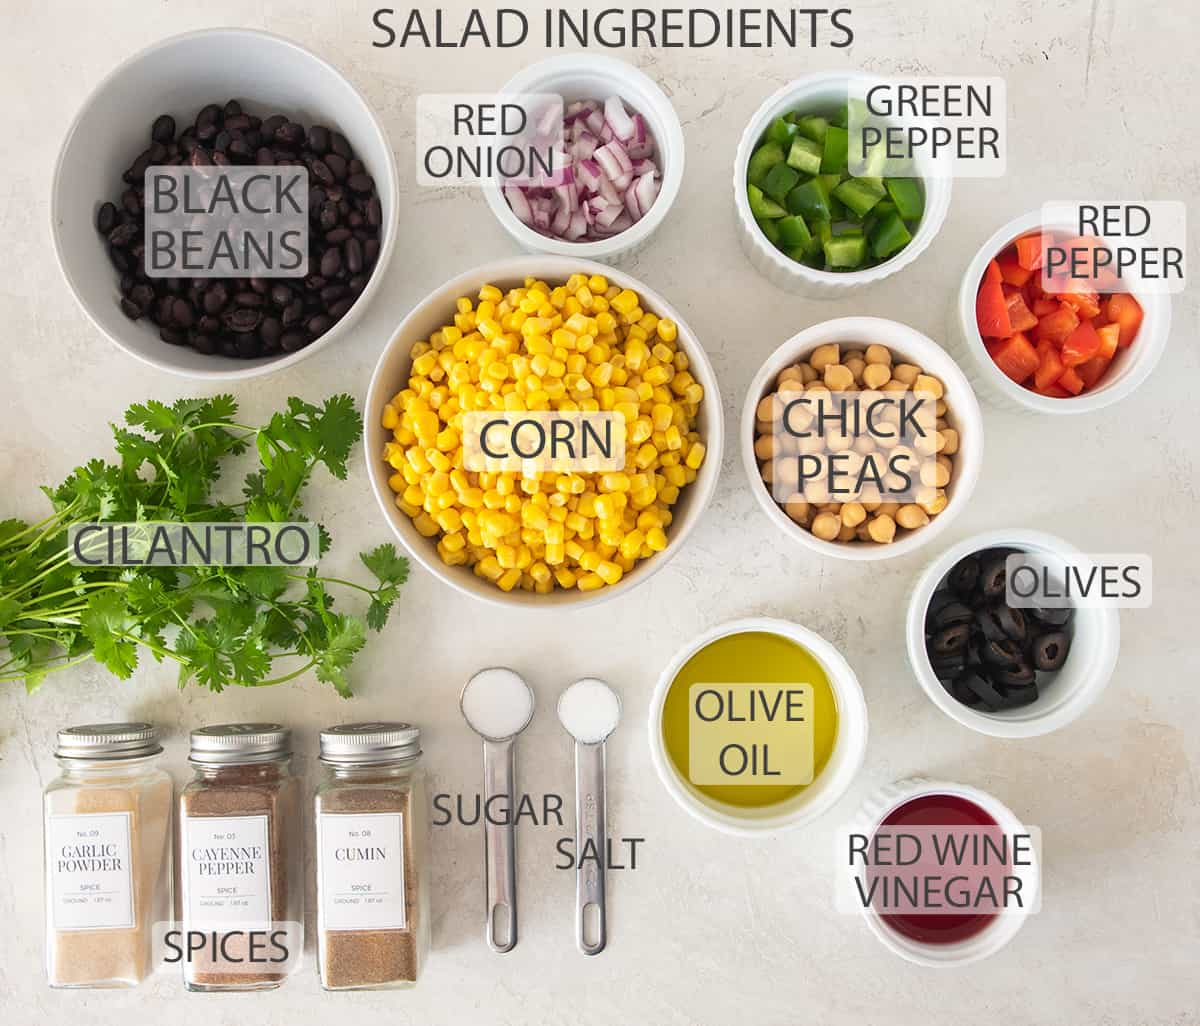 Ingredients for corn and black bean salad with text labels.